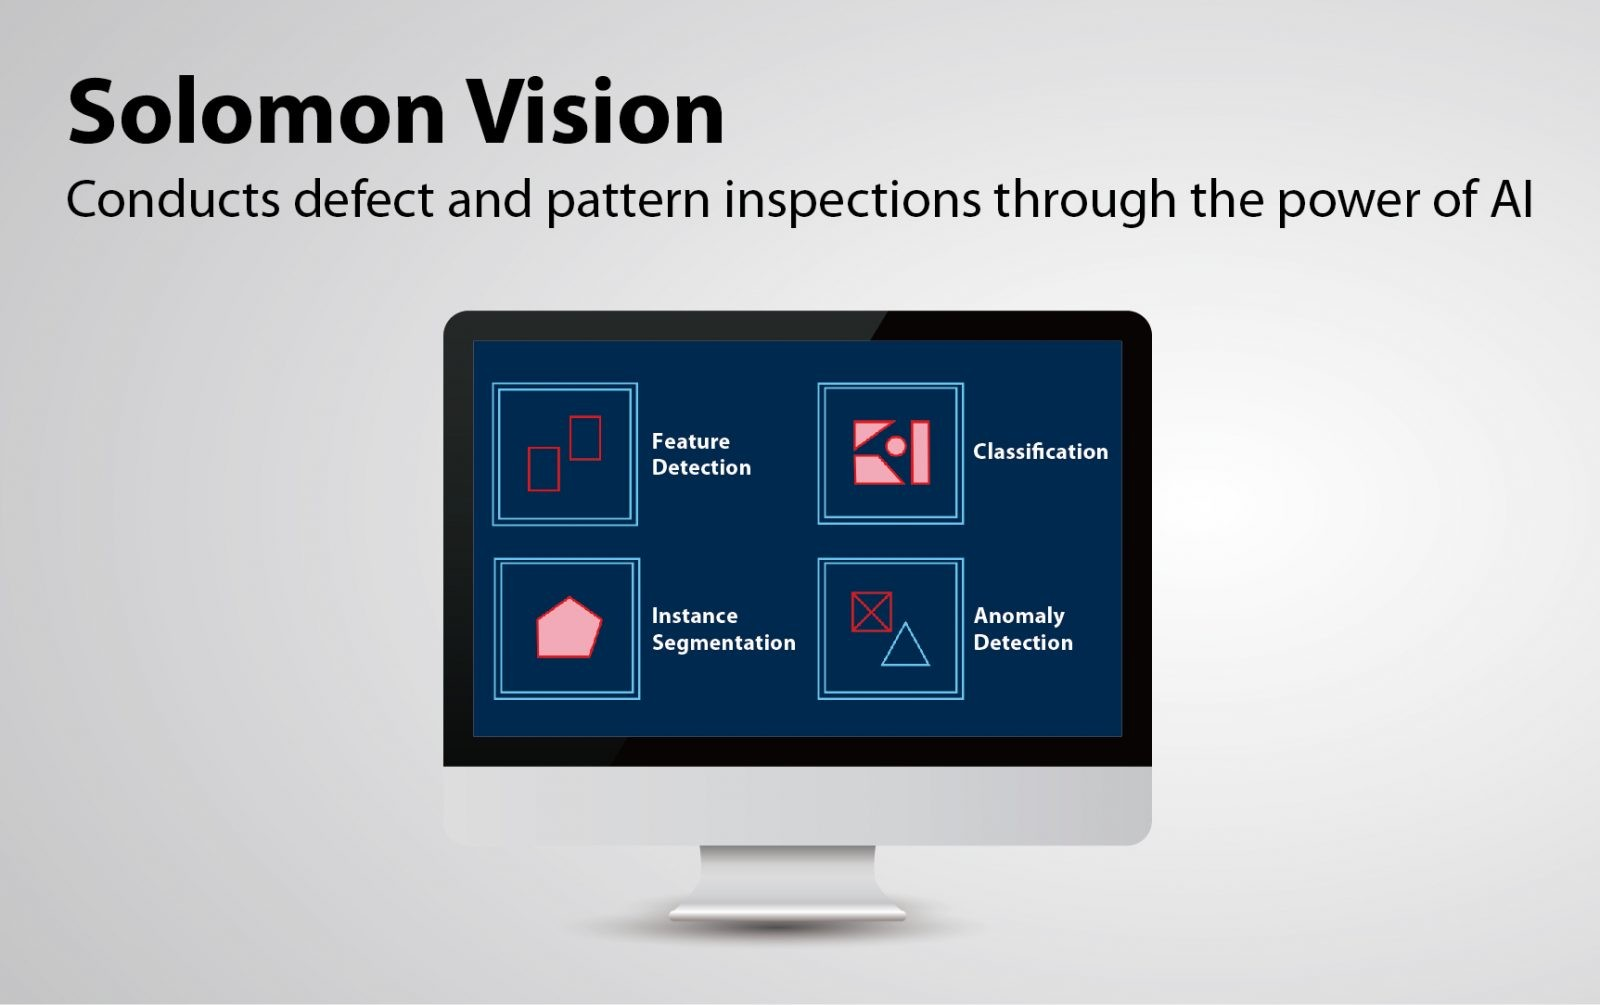 Conducts defect and pattern inspections through the power of AI